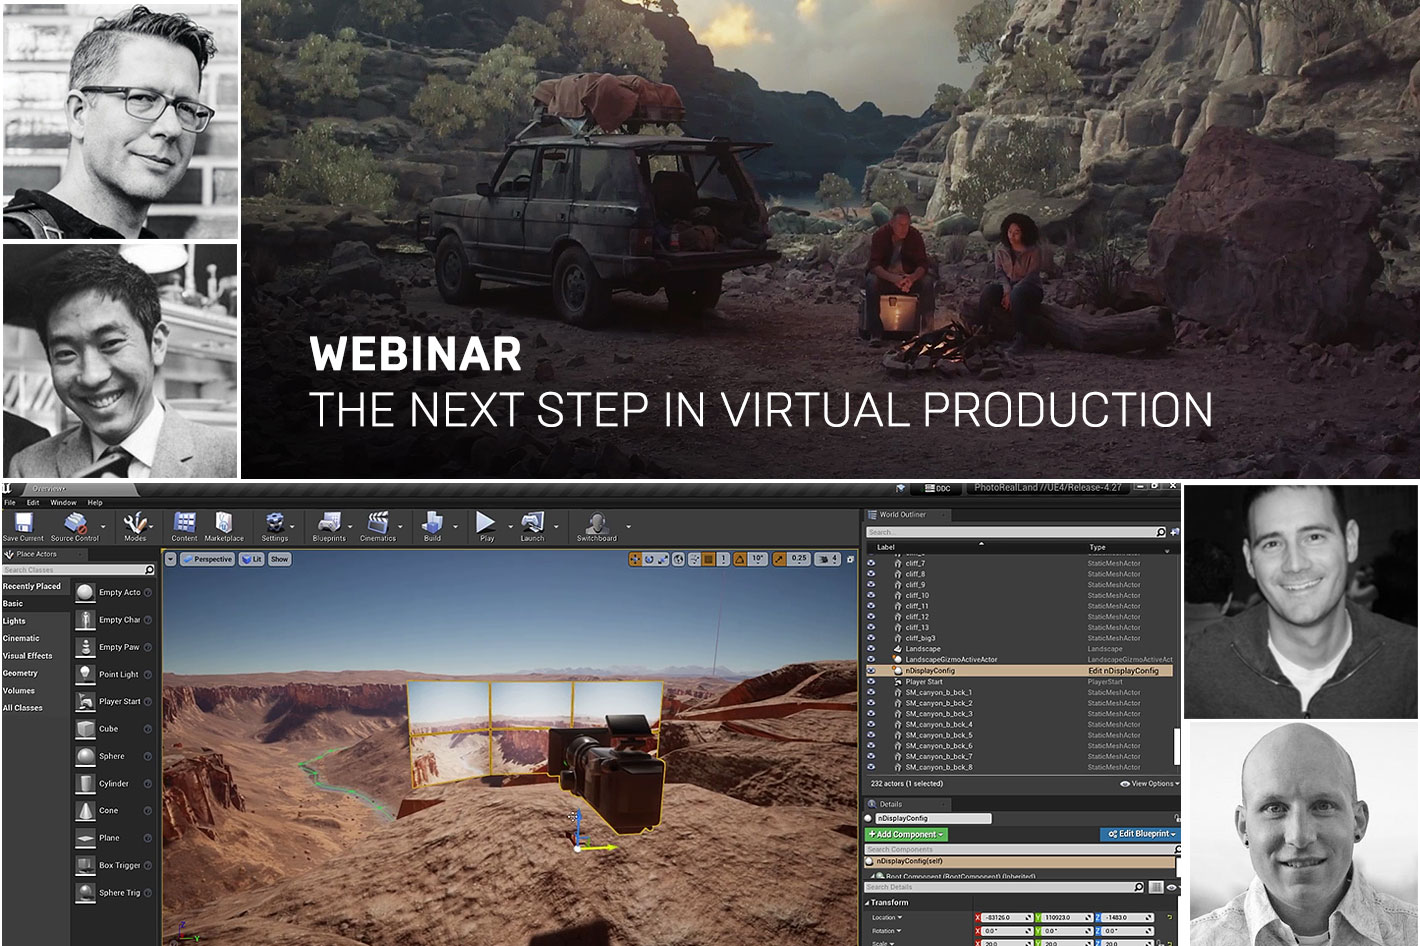 A free webinar from Epic Games: the next step in Virtual Production